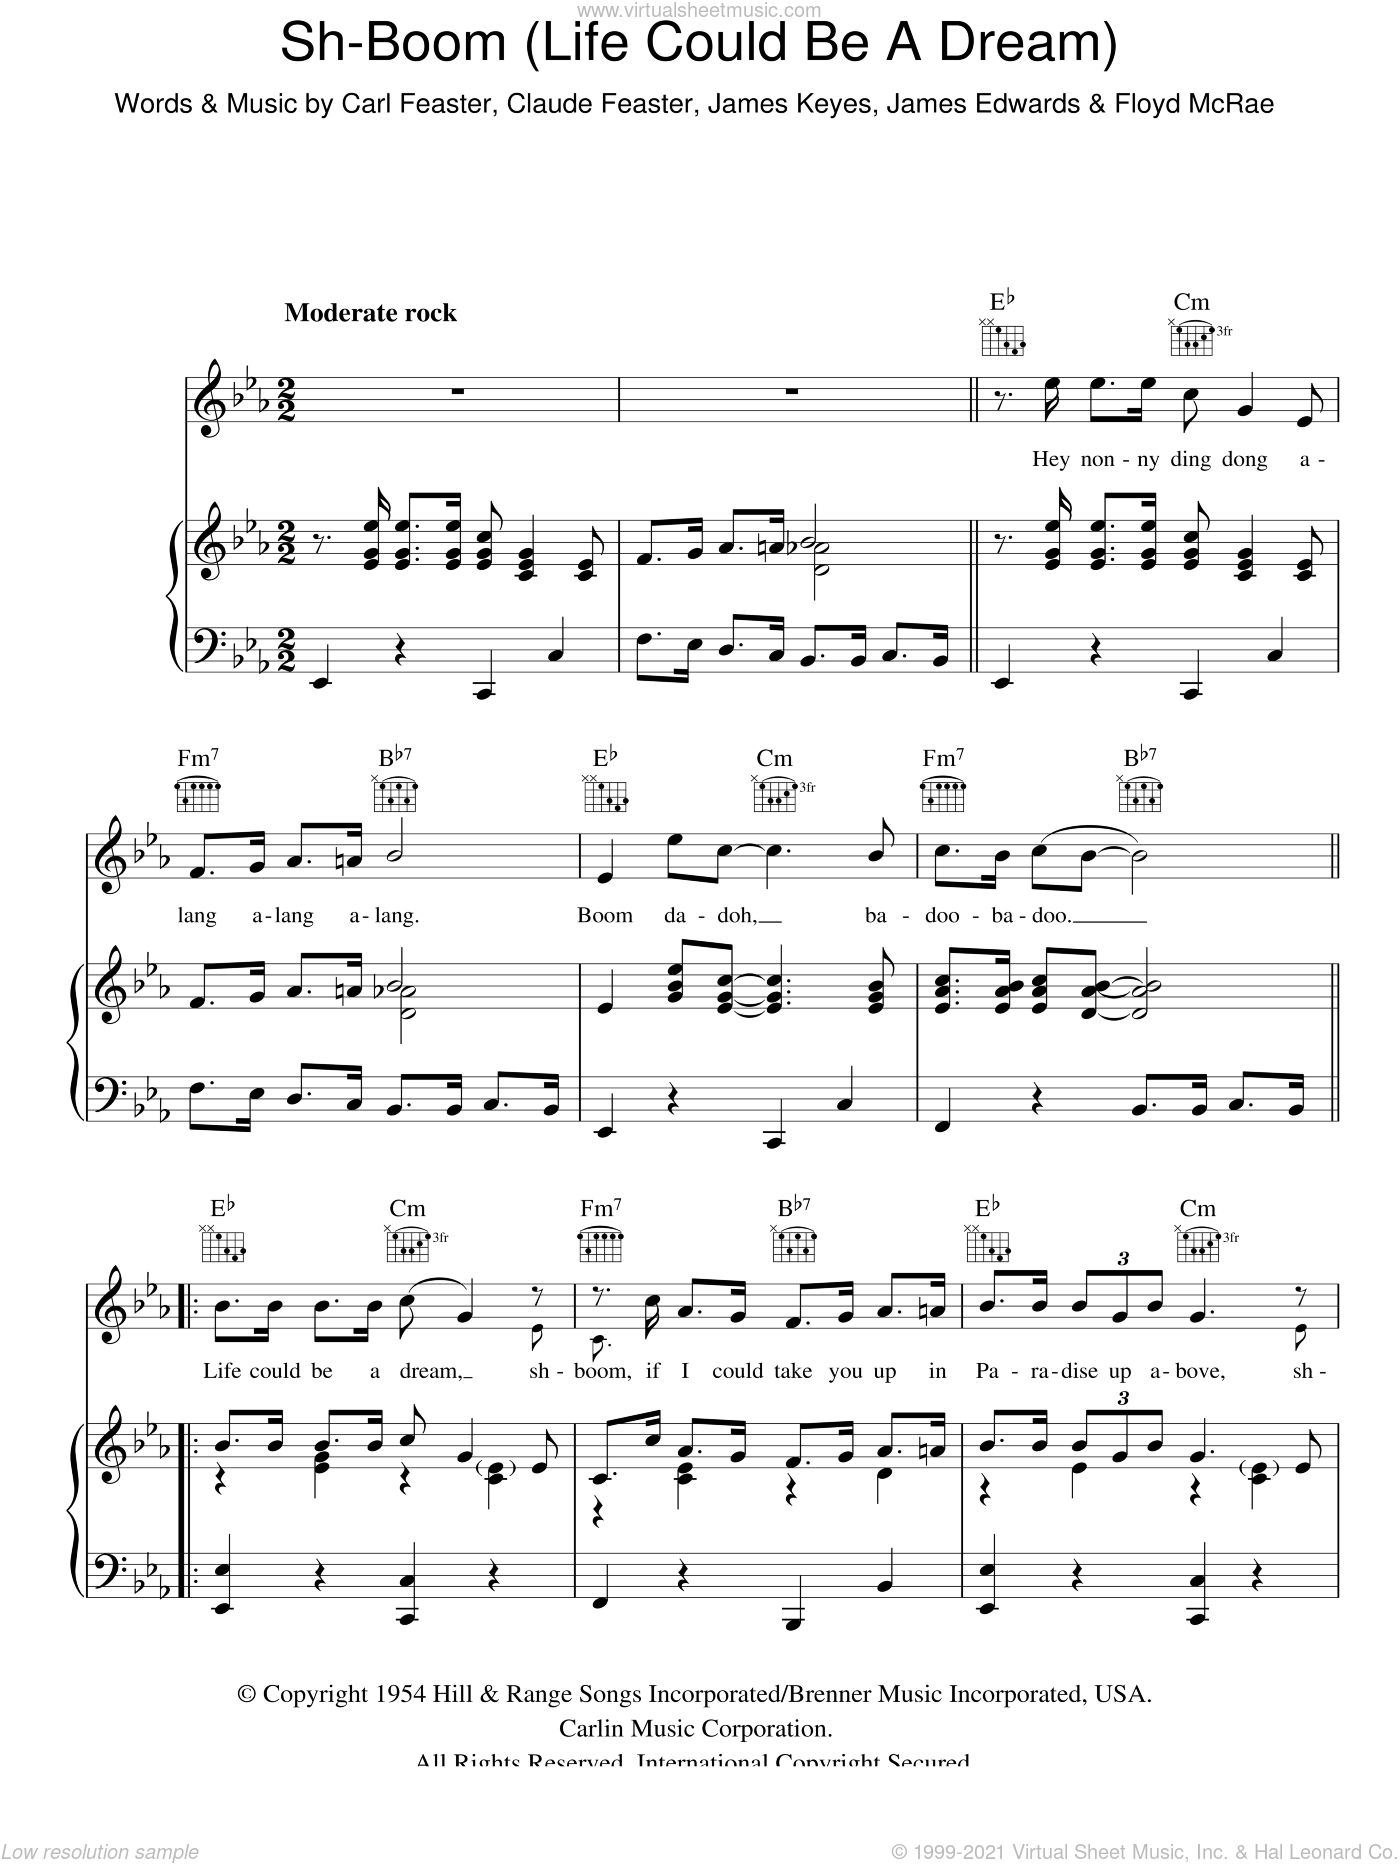 Sh-boom (Life Could Be A Dream) sheet music for voice, piano or guitar by James Keyes, Carl Feaster, Claude Feaster, Floyd McRae and James Edwards. Score Image Preview.